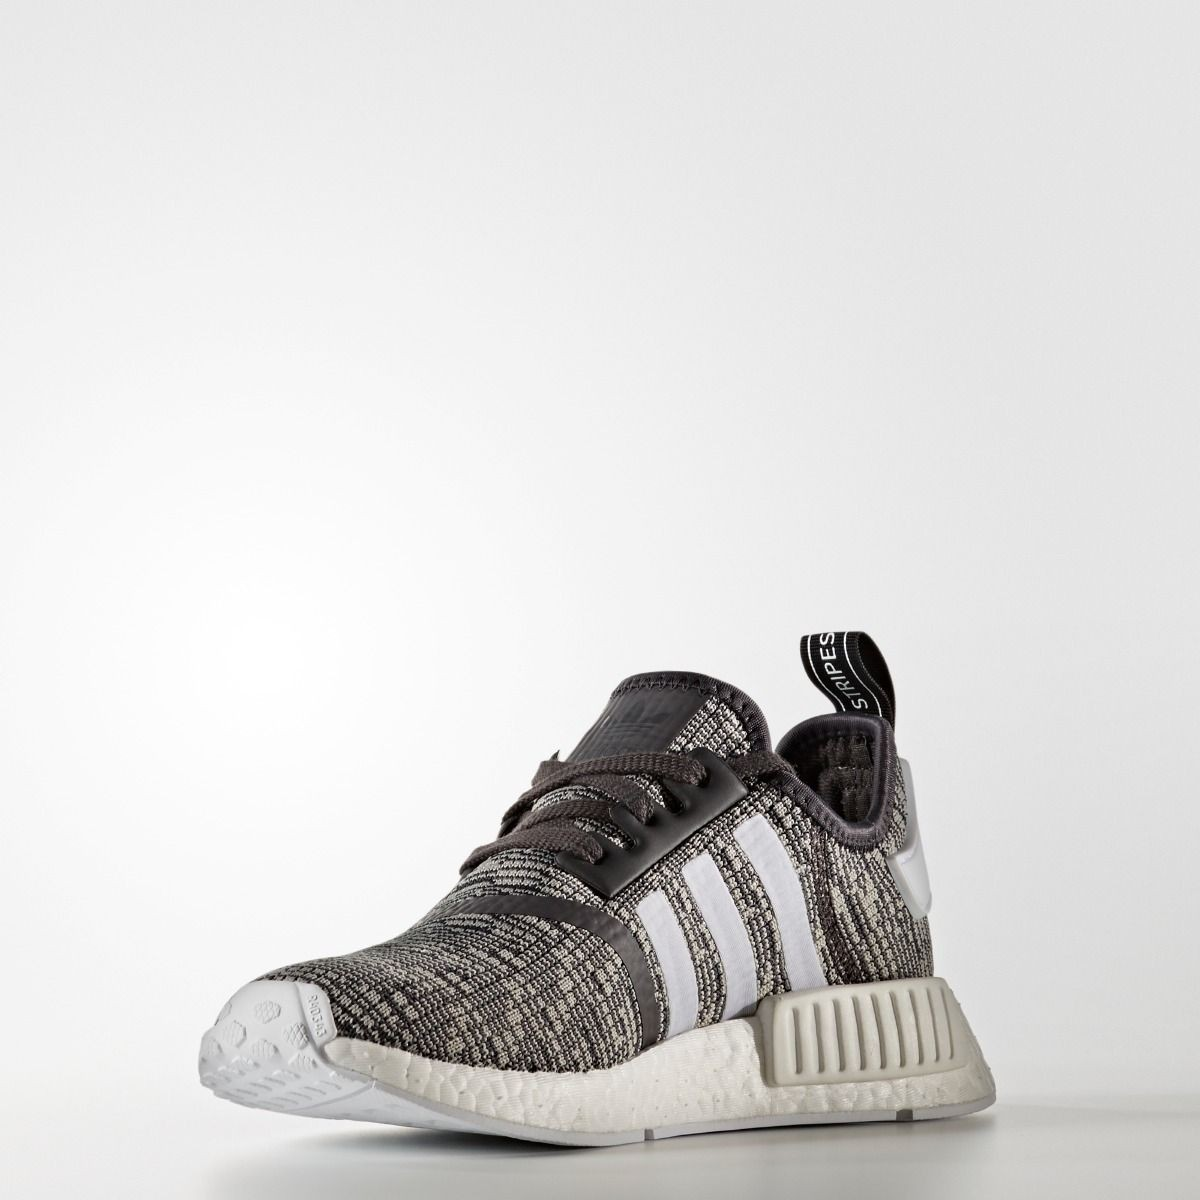 adidas nmd r1 boost schwarz grau by3035 frauen schuhe. Black Bedroom Furniture Sets. Home Design Ideas